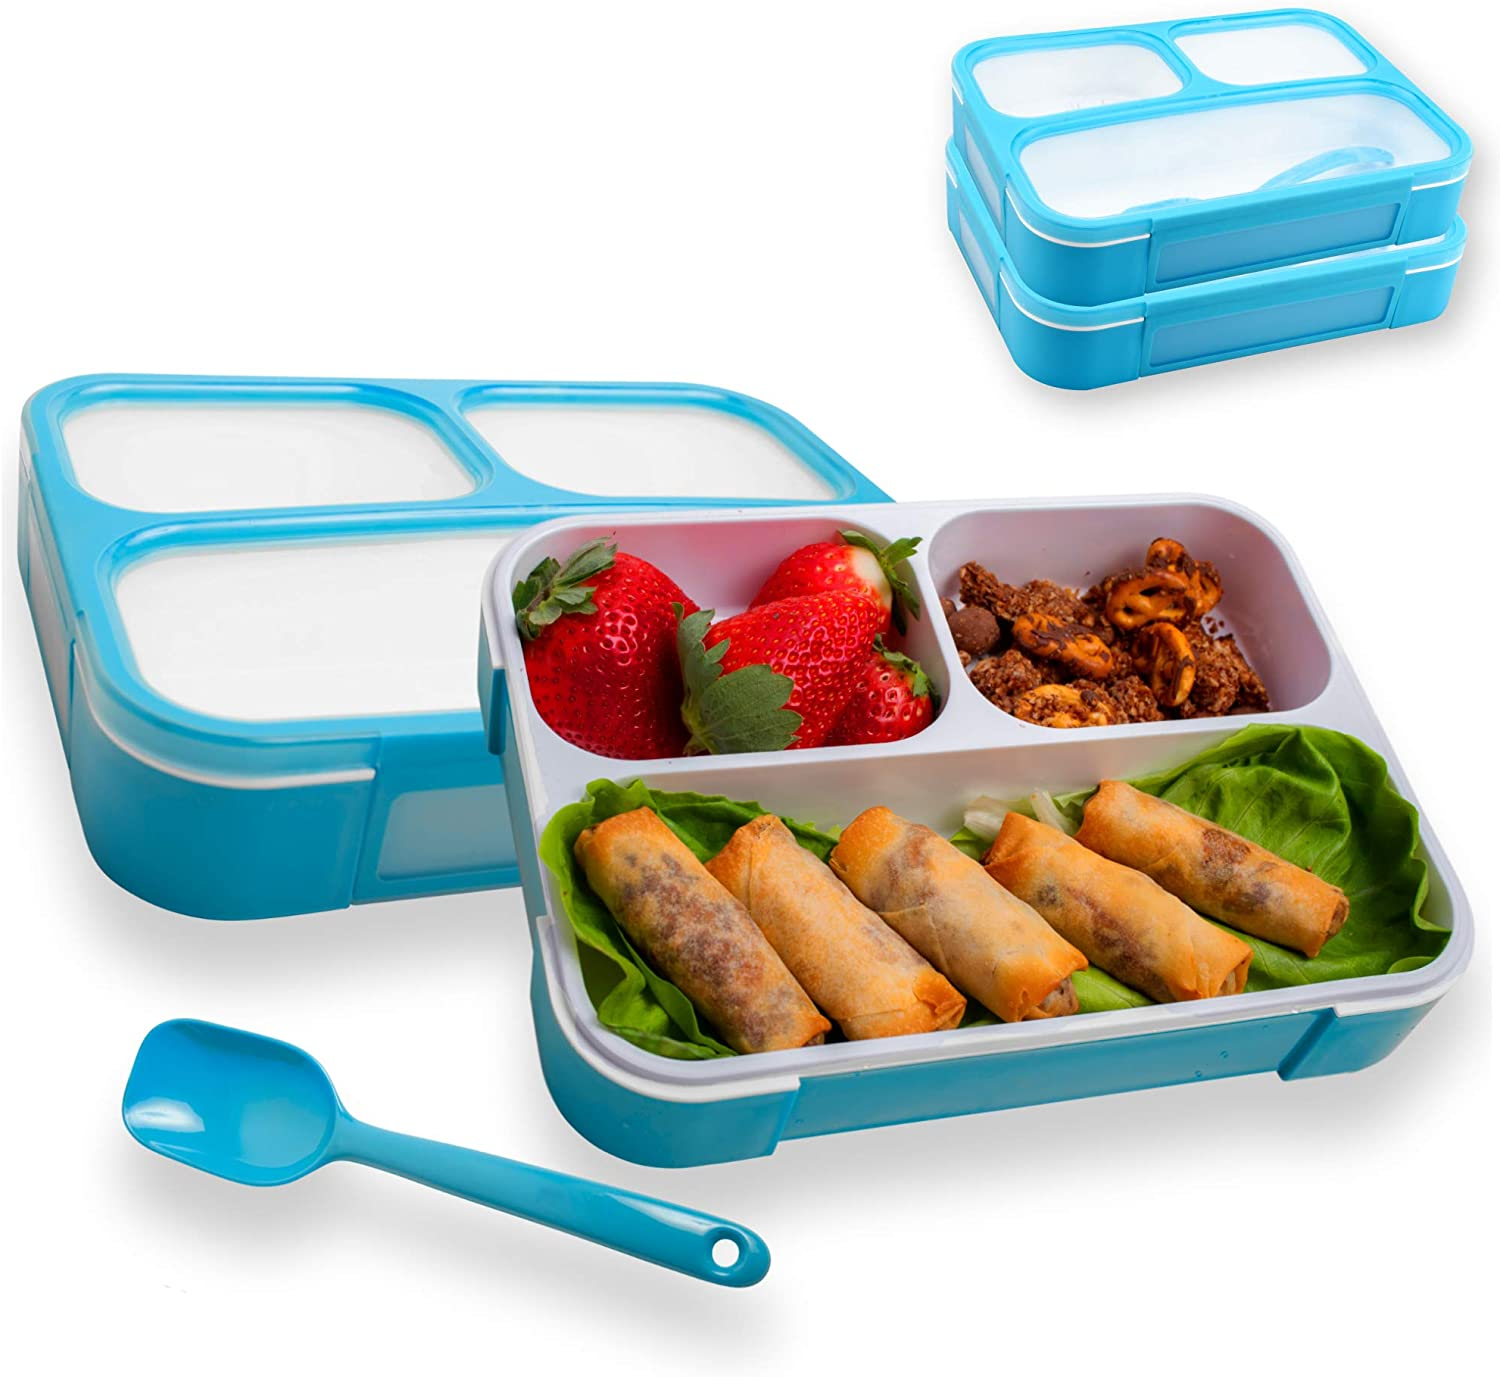 Leakproof Bento Lunch Box With 3 Compartments   New Food Prep & Meal Planning Containers For Kids & Adults   BPA Free Leak Proof Bento Lunch Boxes   Microwave & Freezer Safe By Easy Togo (Blue 2 Pack)